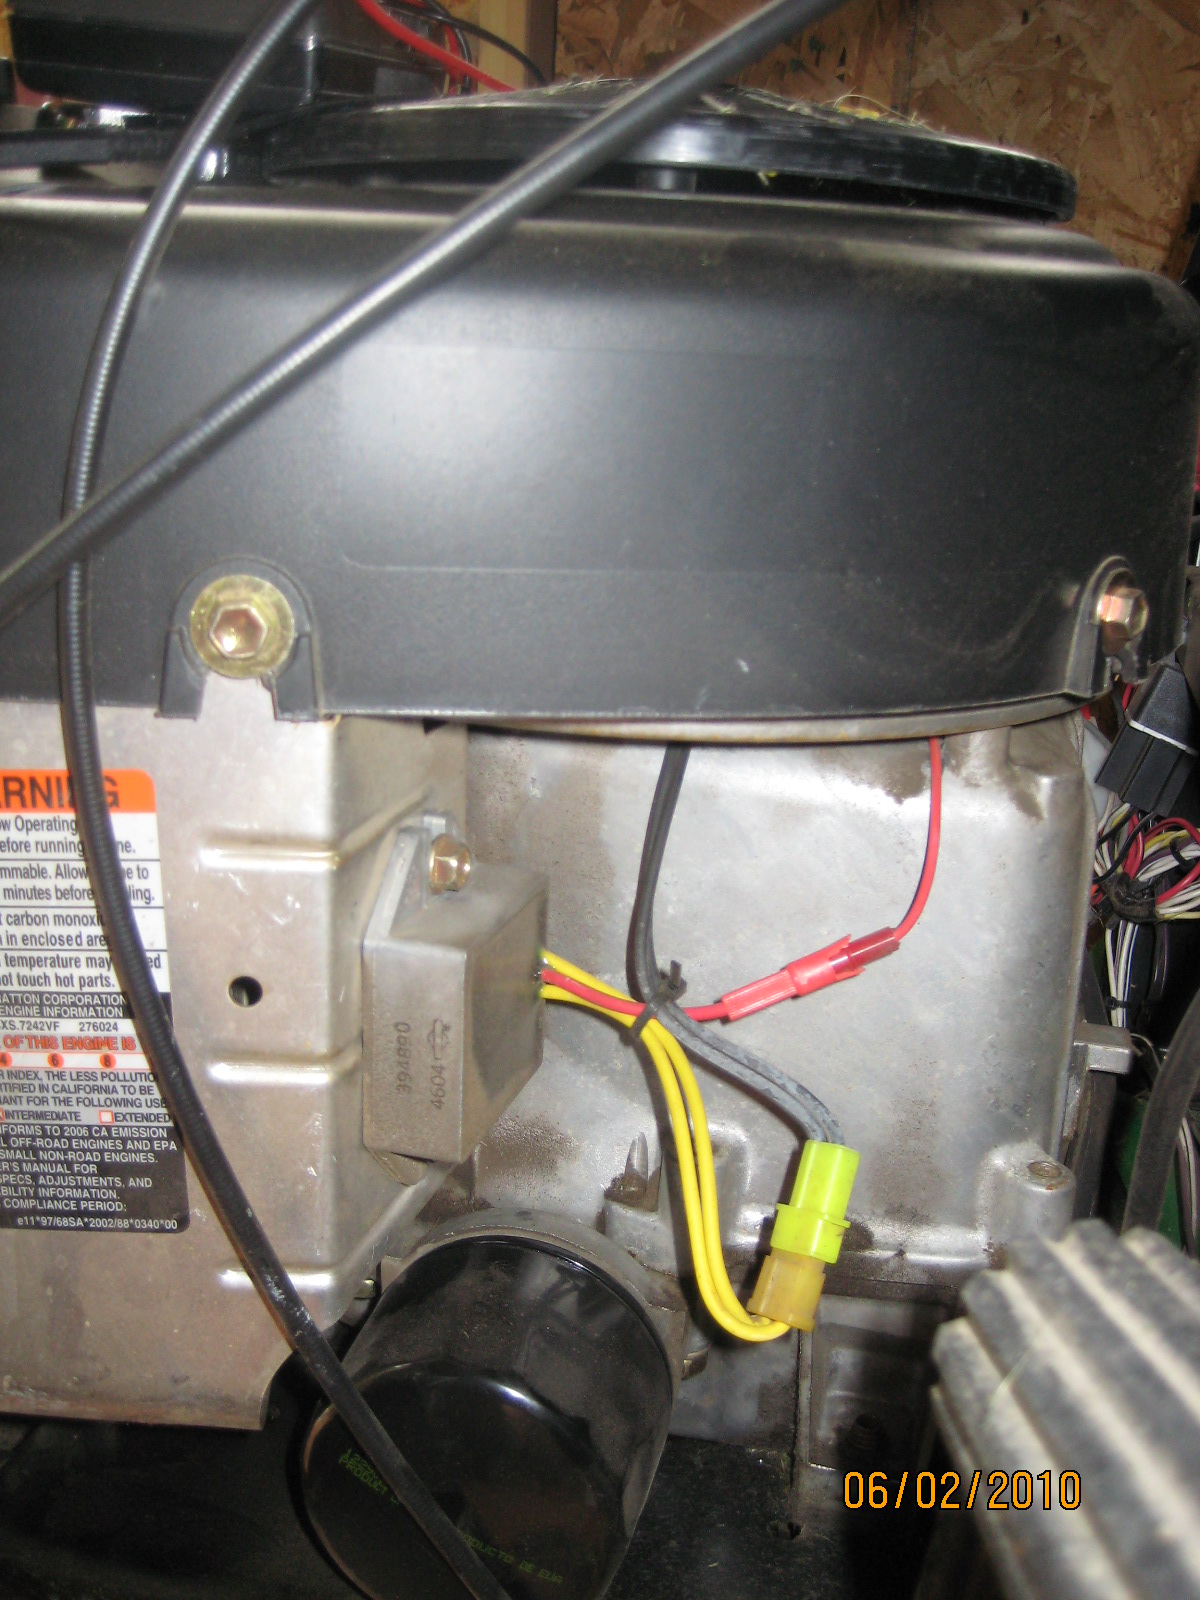 3 wire voltage regulator diagram have a deere l111 riding mower with a briggs amp stratton 40 4 wire voltage regulator wiring diagram #10